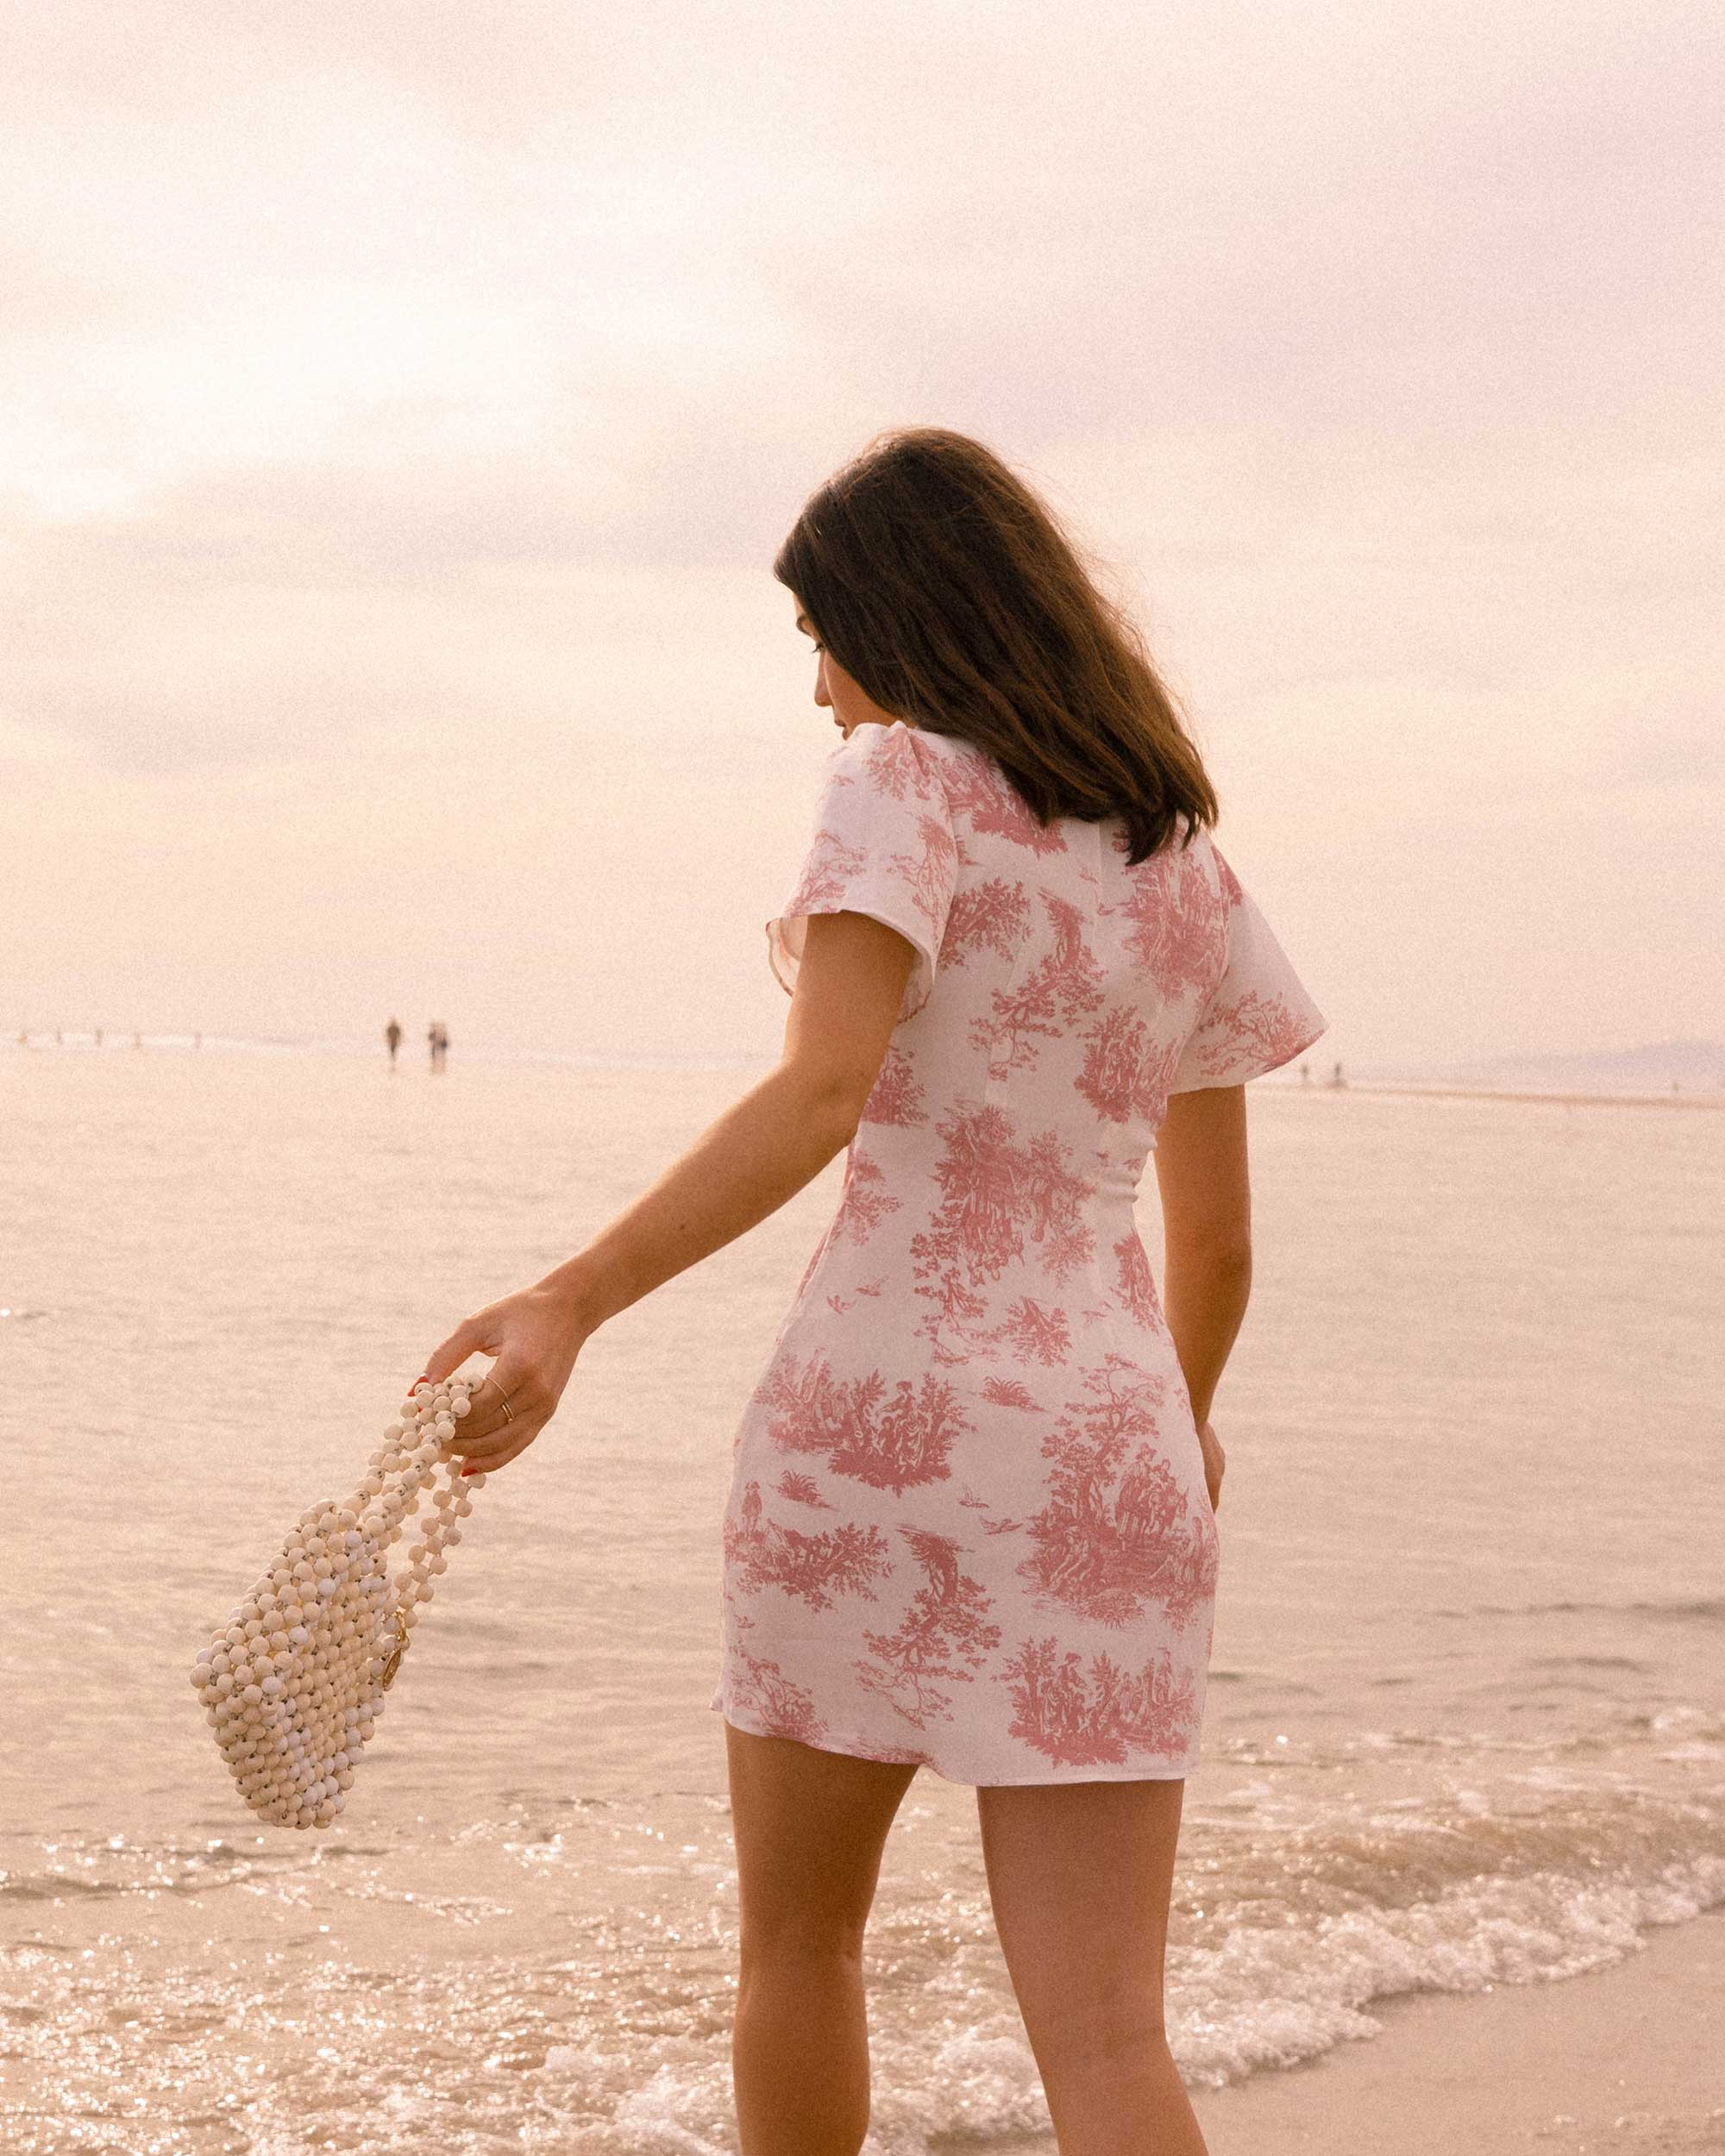 Pink Toile - Stone Cold Fox Lure pink toile print mini dress in Newport Beach, California for the perfect spring dress